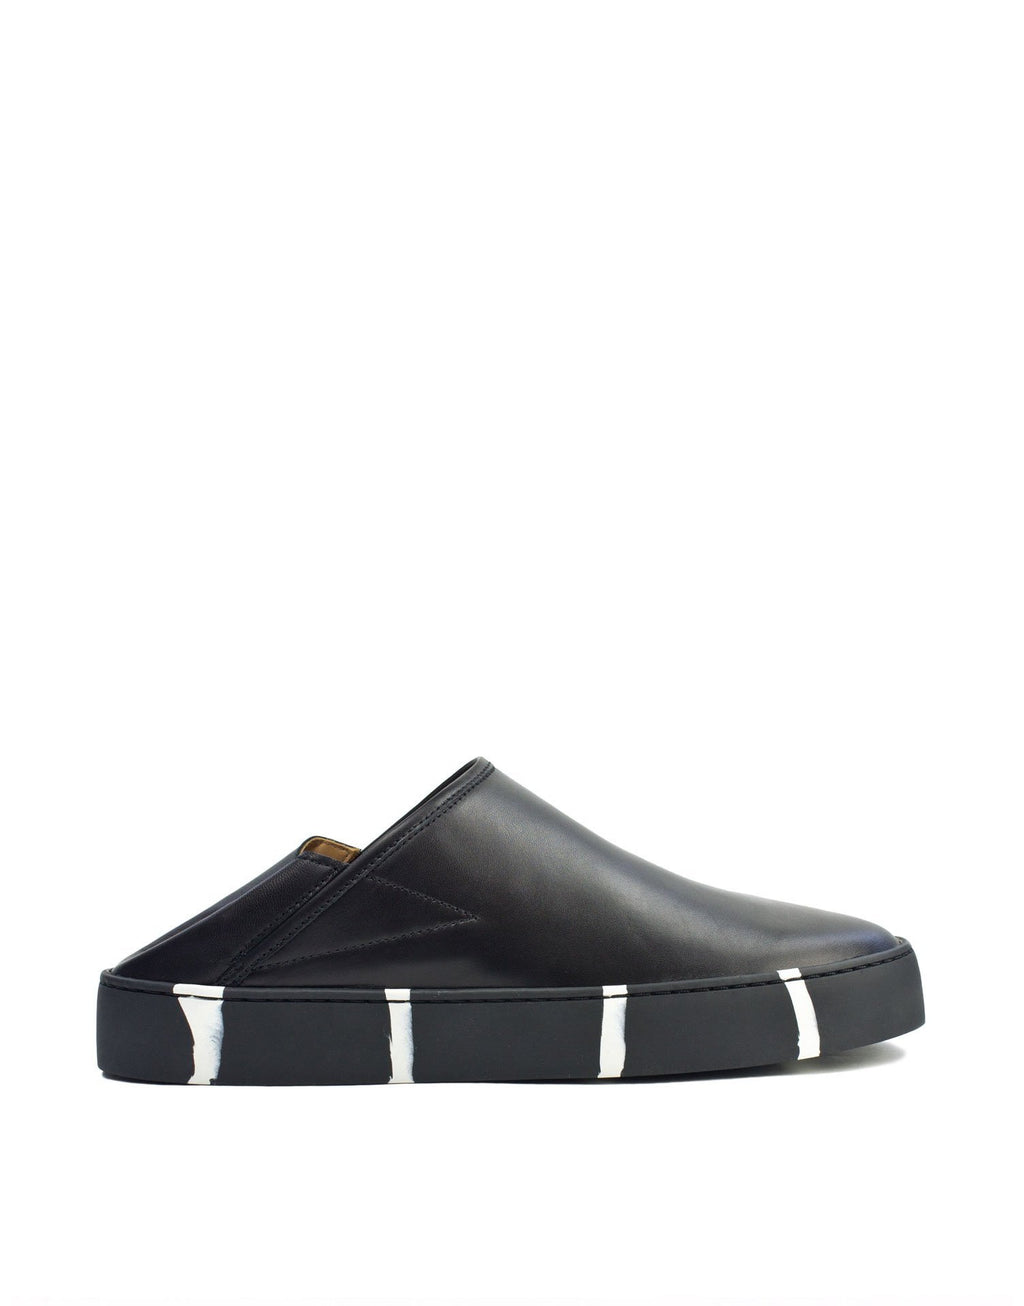 Black slip on sneaker by designer Georgina Goodman with kick down back. These sneakers are perfect for summer. Sample sale sneakers.